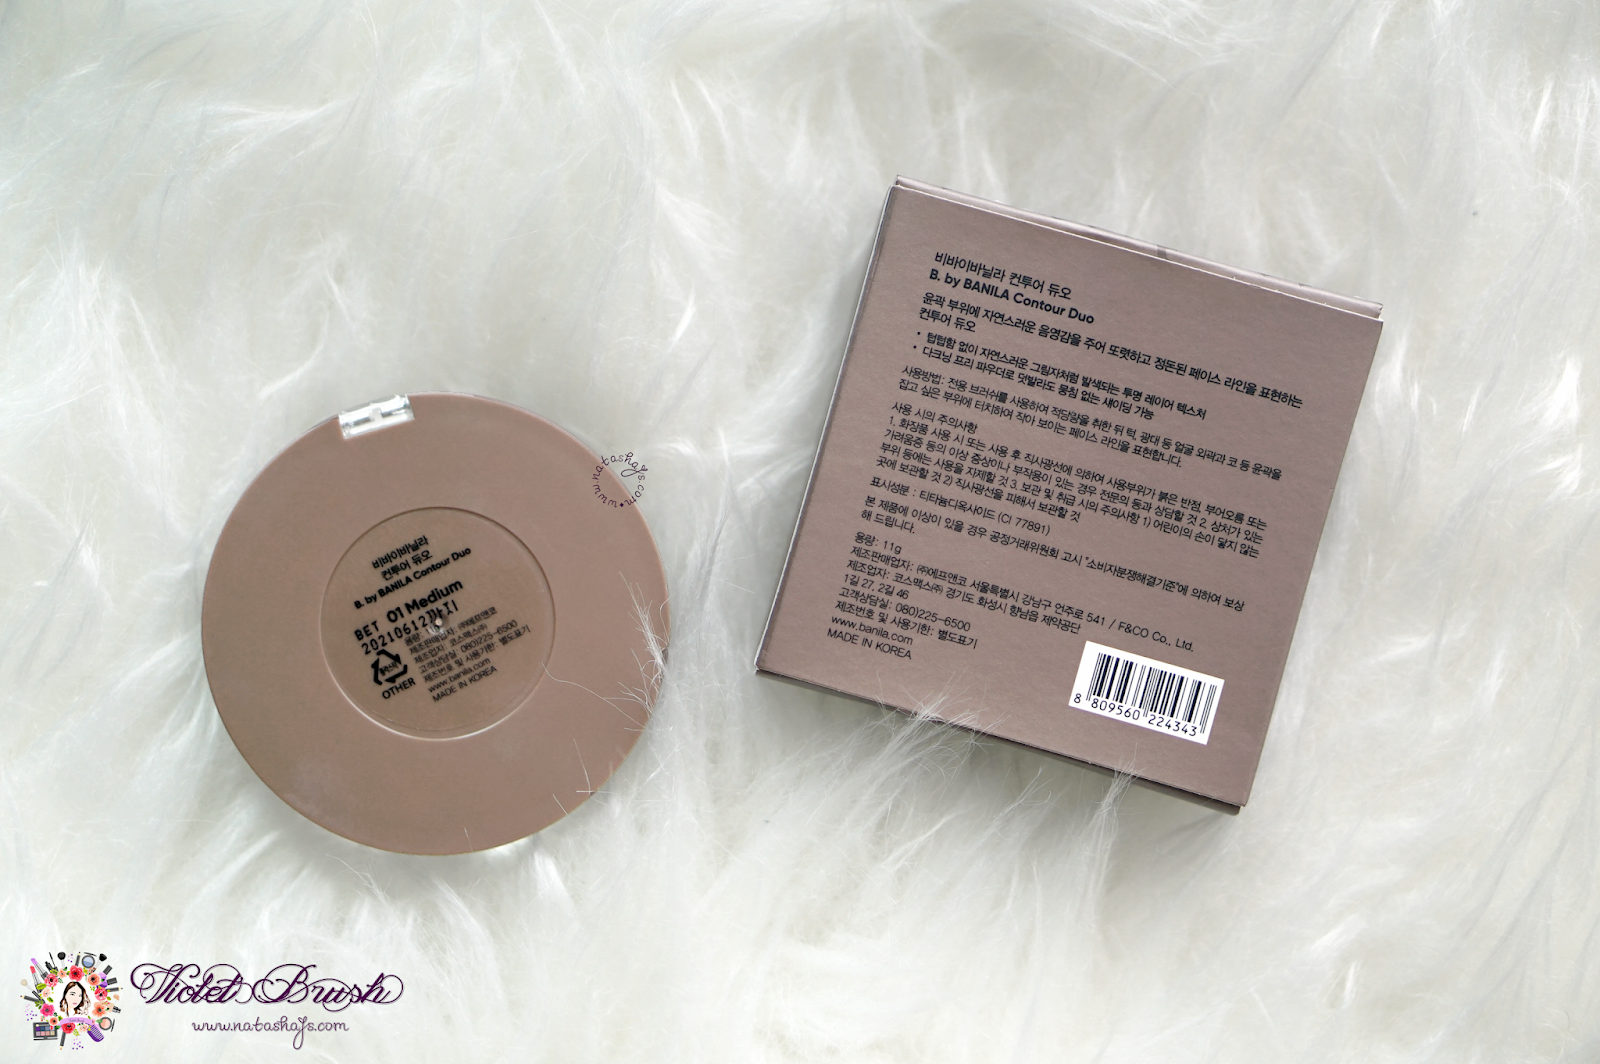 b-by-banila-co-color-mood-mascara-contour-duo-korean-beauty-review-by-indonesian-beauty-blogger